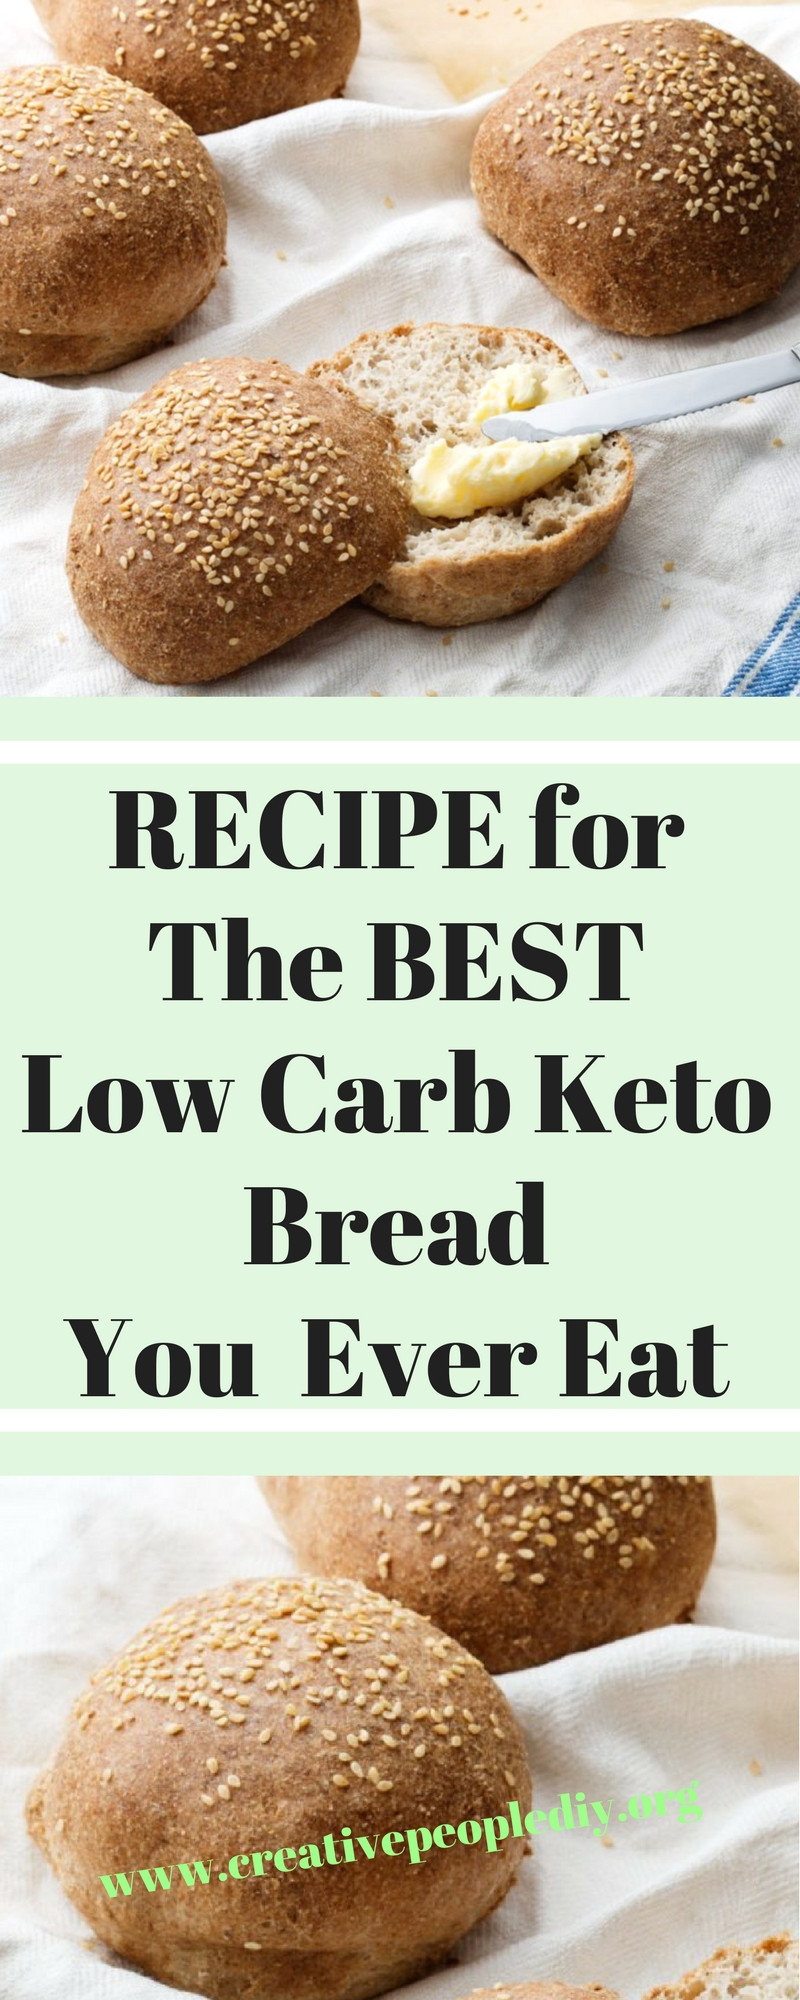 Healthy Low Carb Bread  RECIPE for The BEST Low Carb Keto Bread You Will Ever Eat